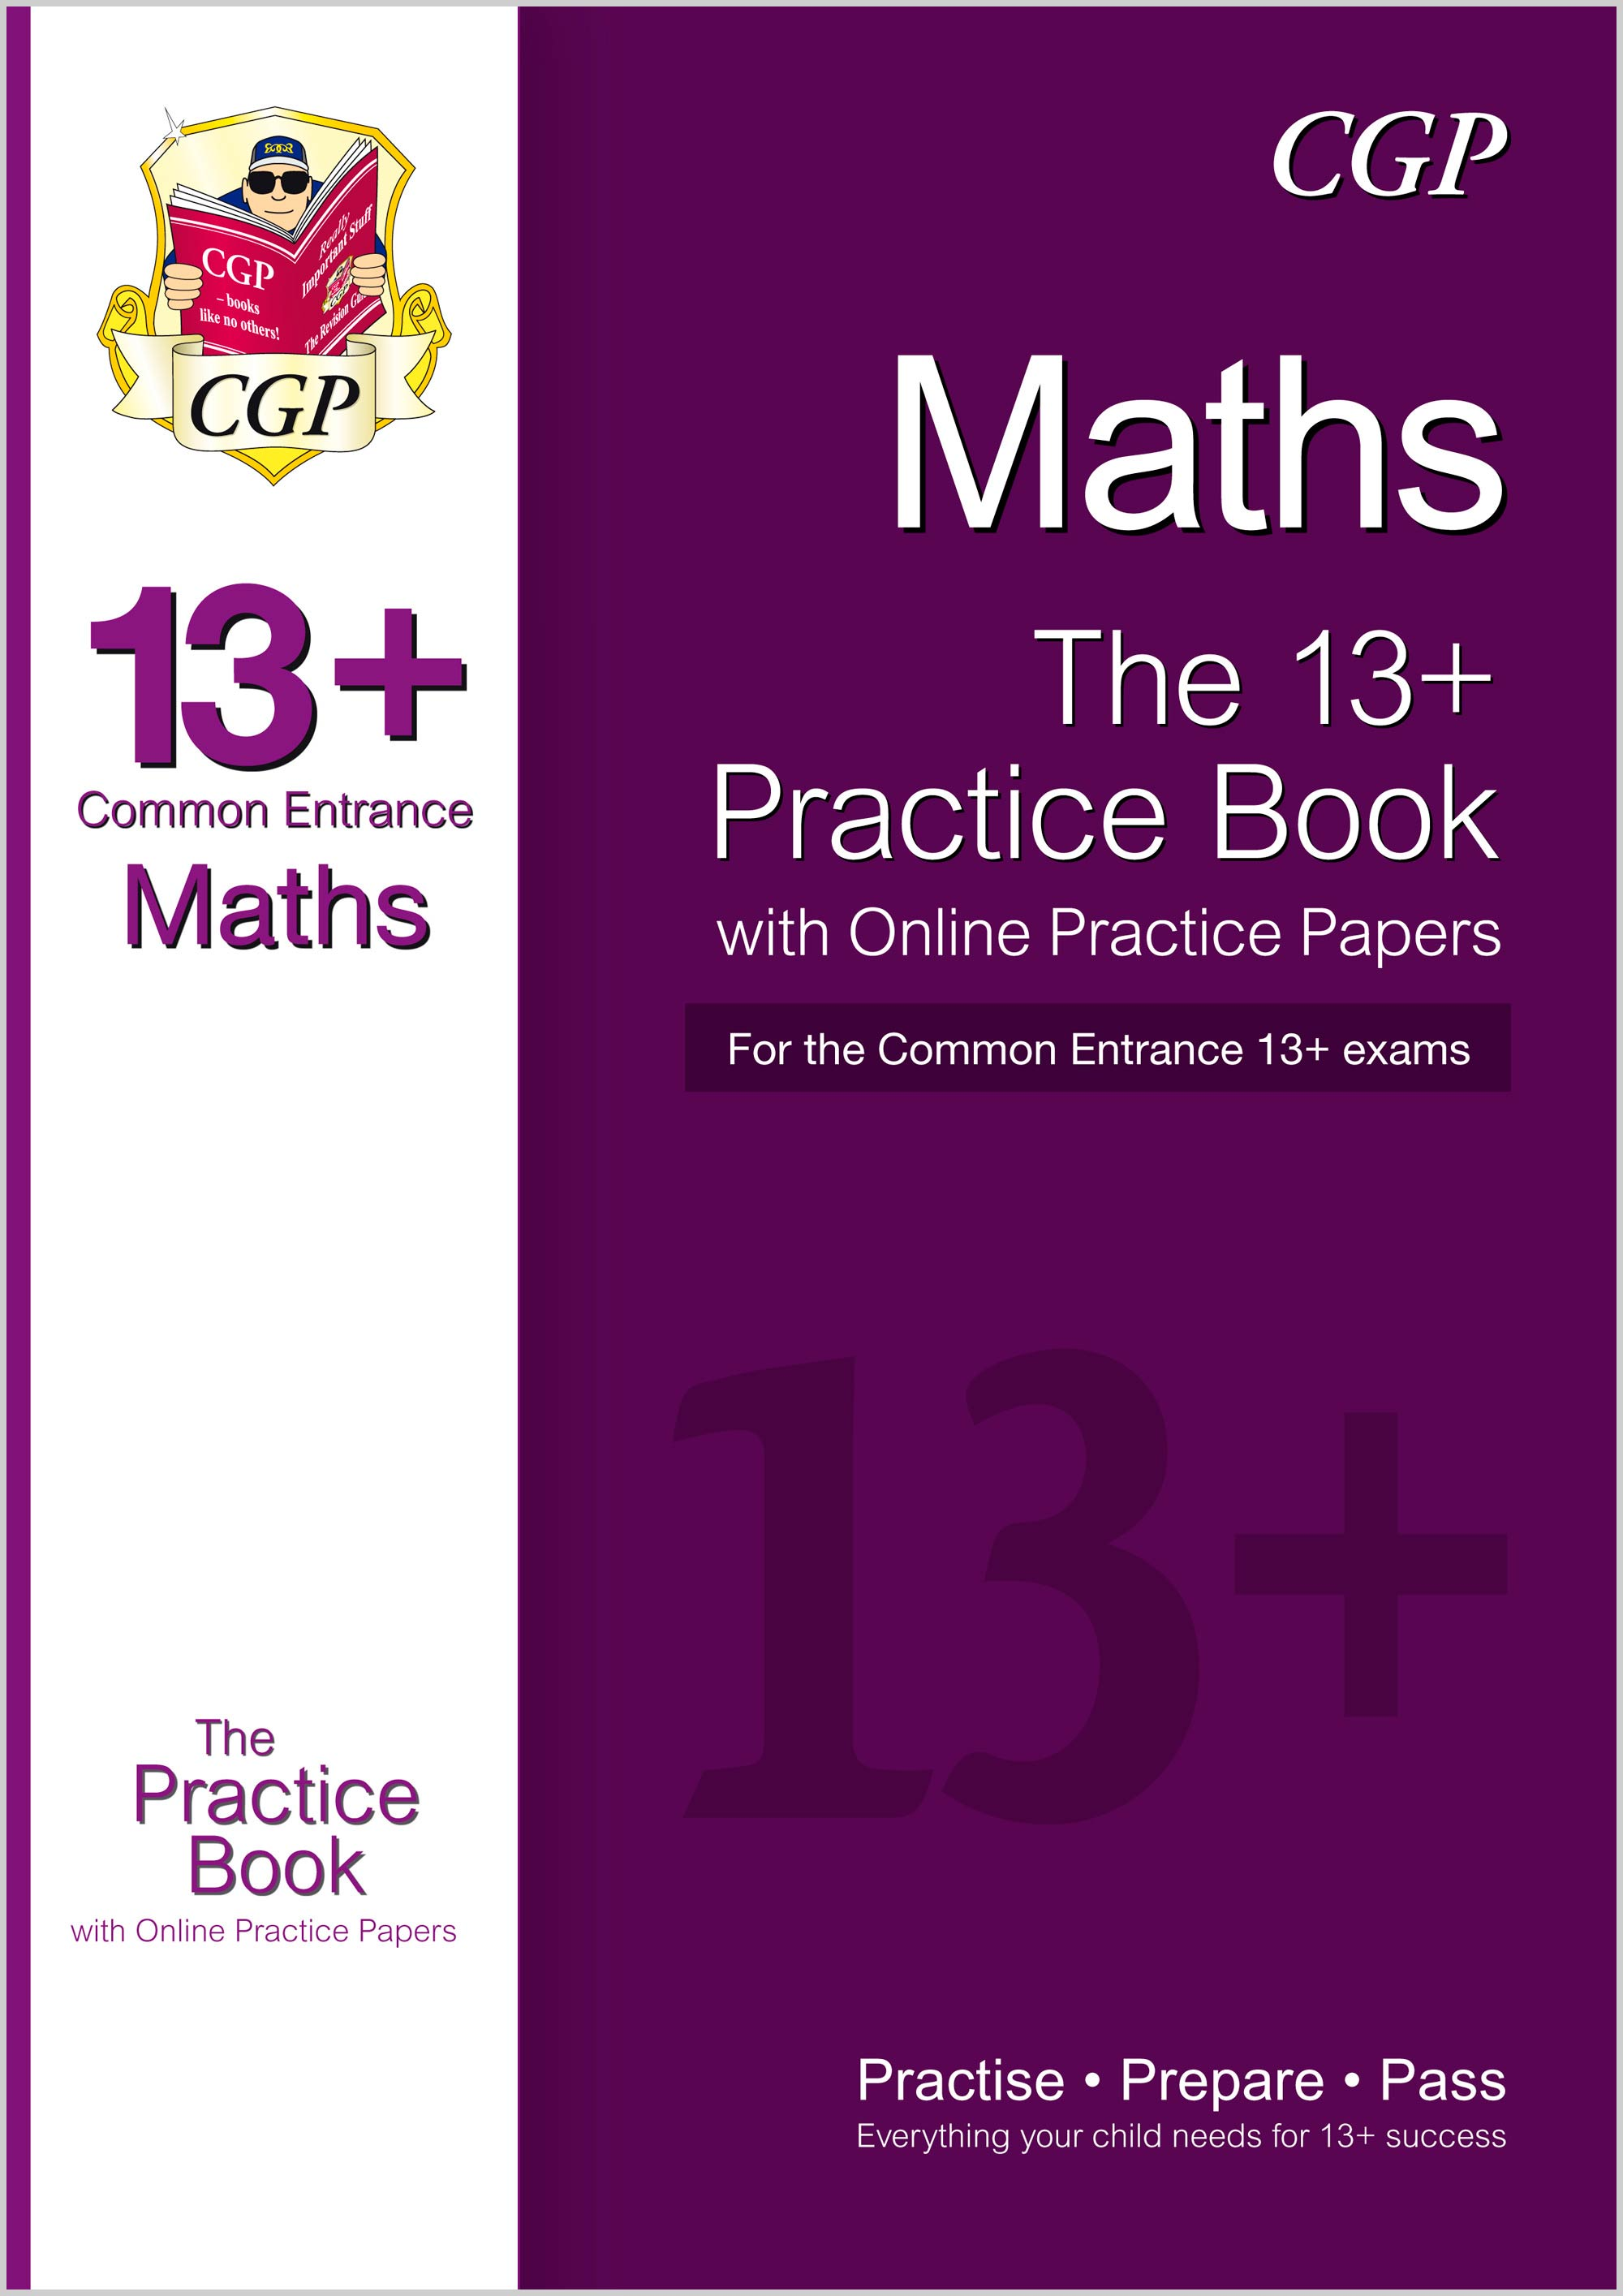 MIQT3 - New 13+ Maths Practice Book for the Common Entrance Exams with Answers & Online Practice Pap